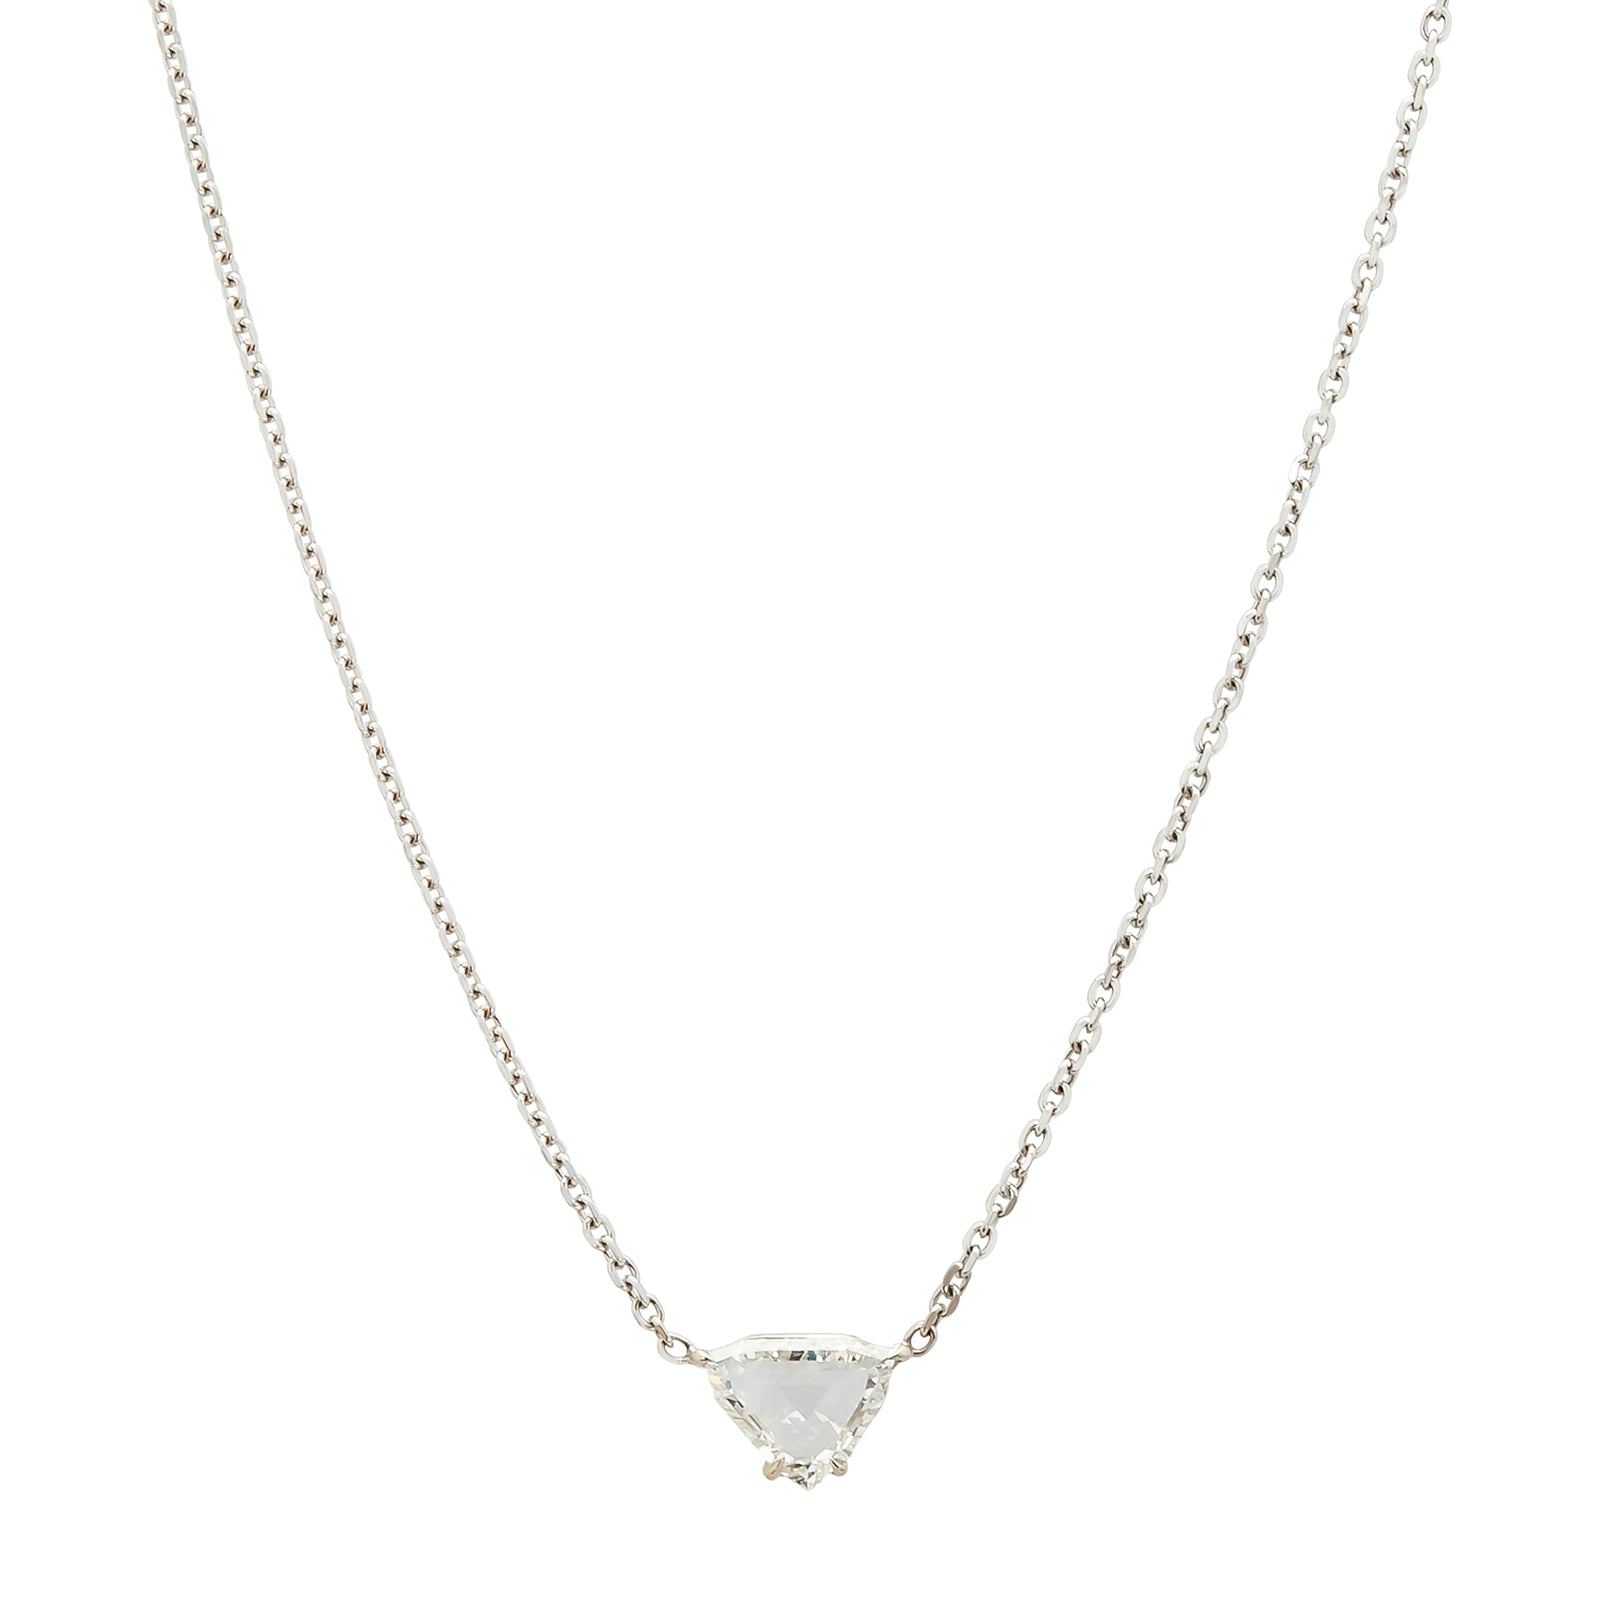 Anita Ko Rose Cut Trillion Diamond Necklace - Necklaces - Broken English Jewelry